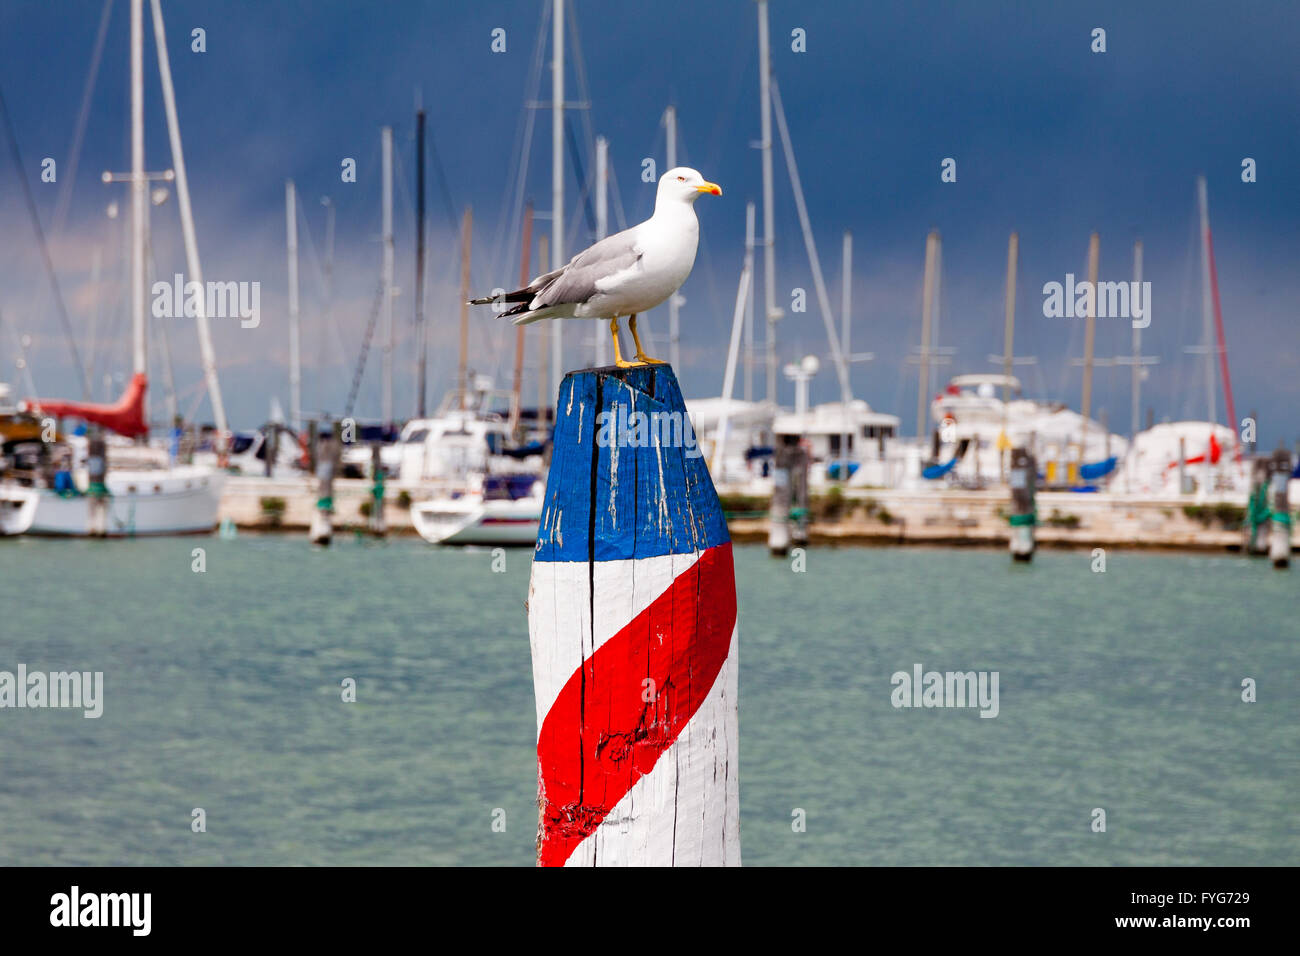 Seagull in the harbor, waiting on wooden stake, with approaching storm - Stock Image